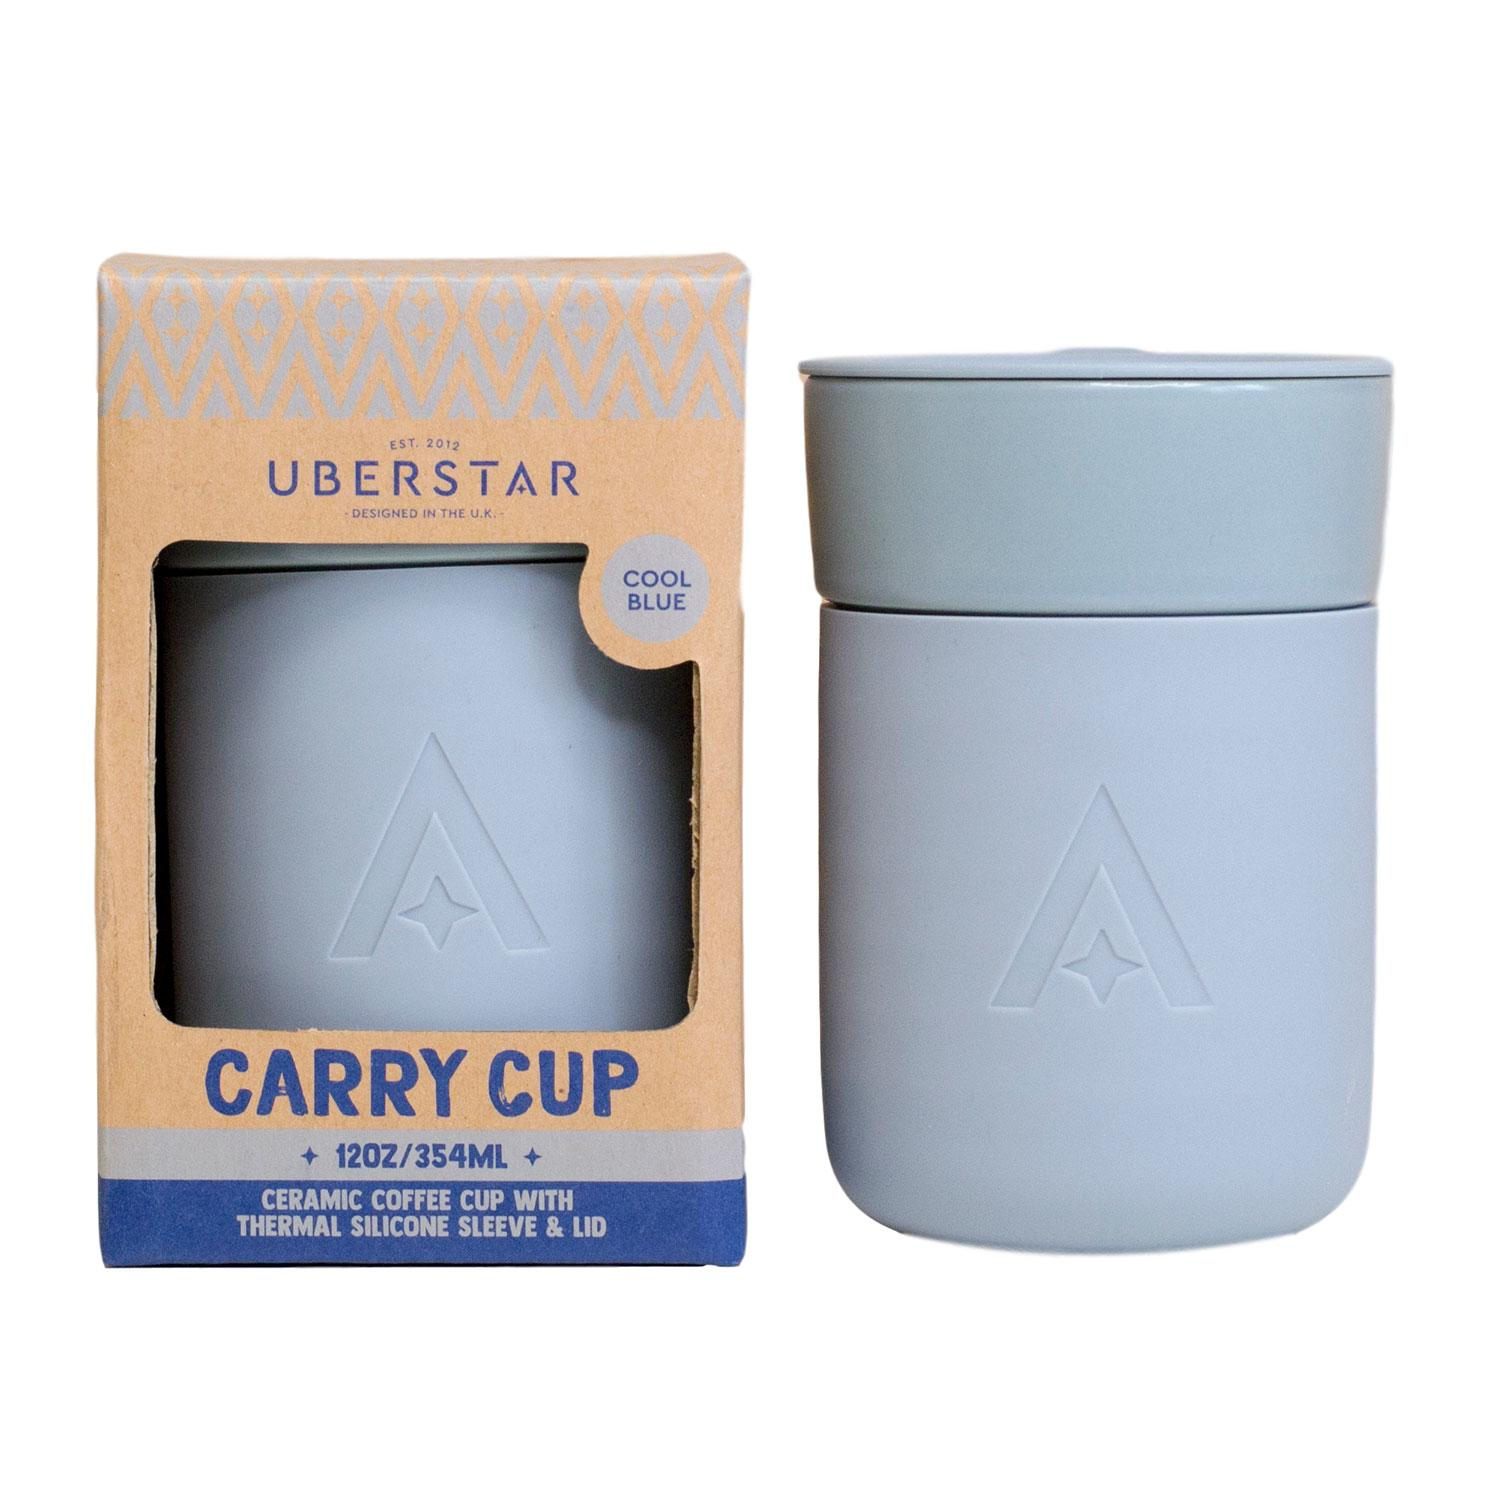 Carry Cup - The Universal Travel Mug by Uberstar (Cool Blue)